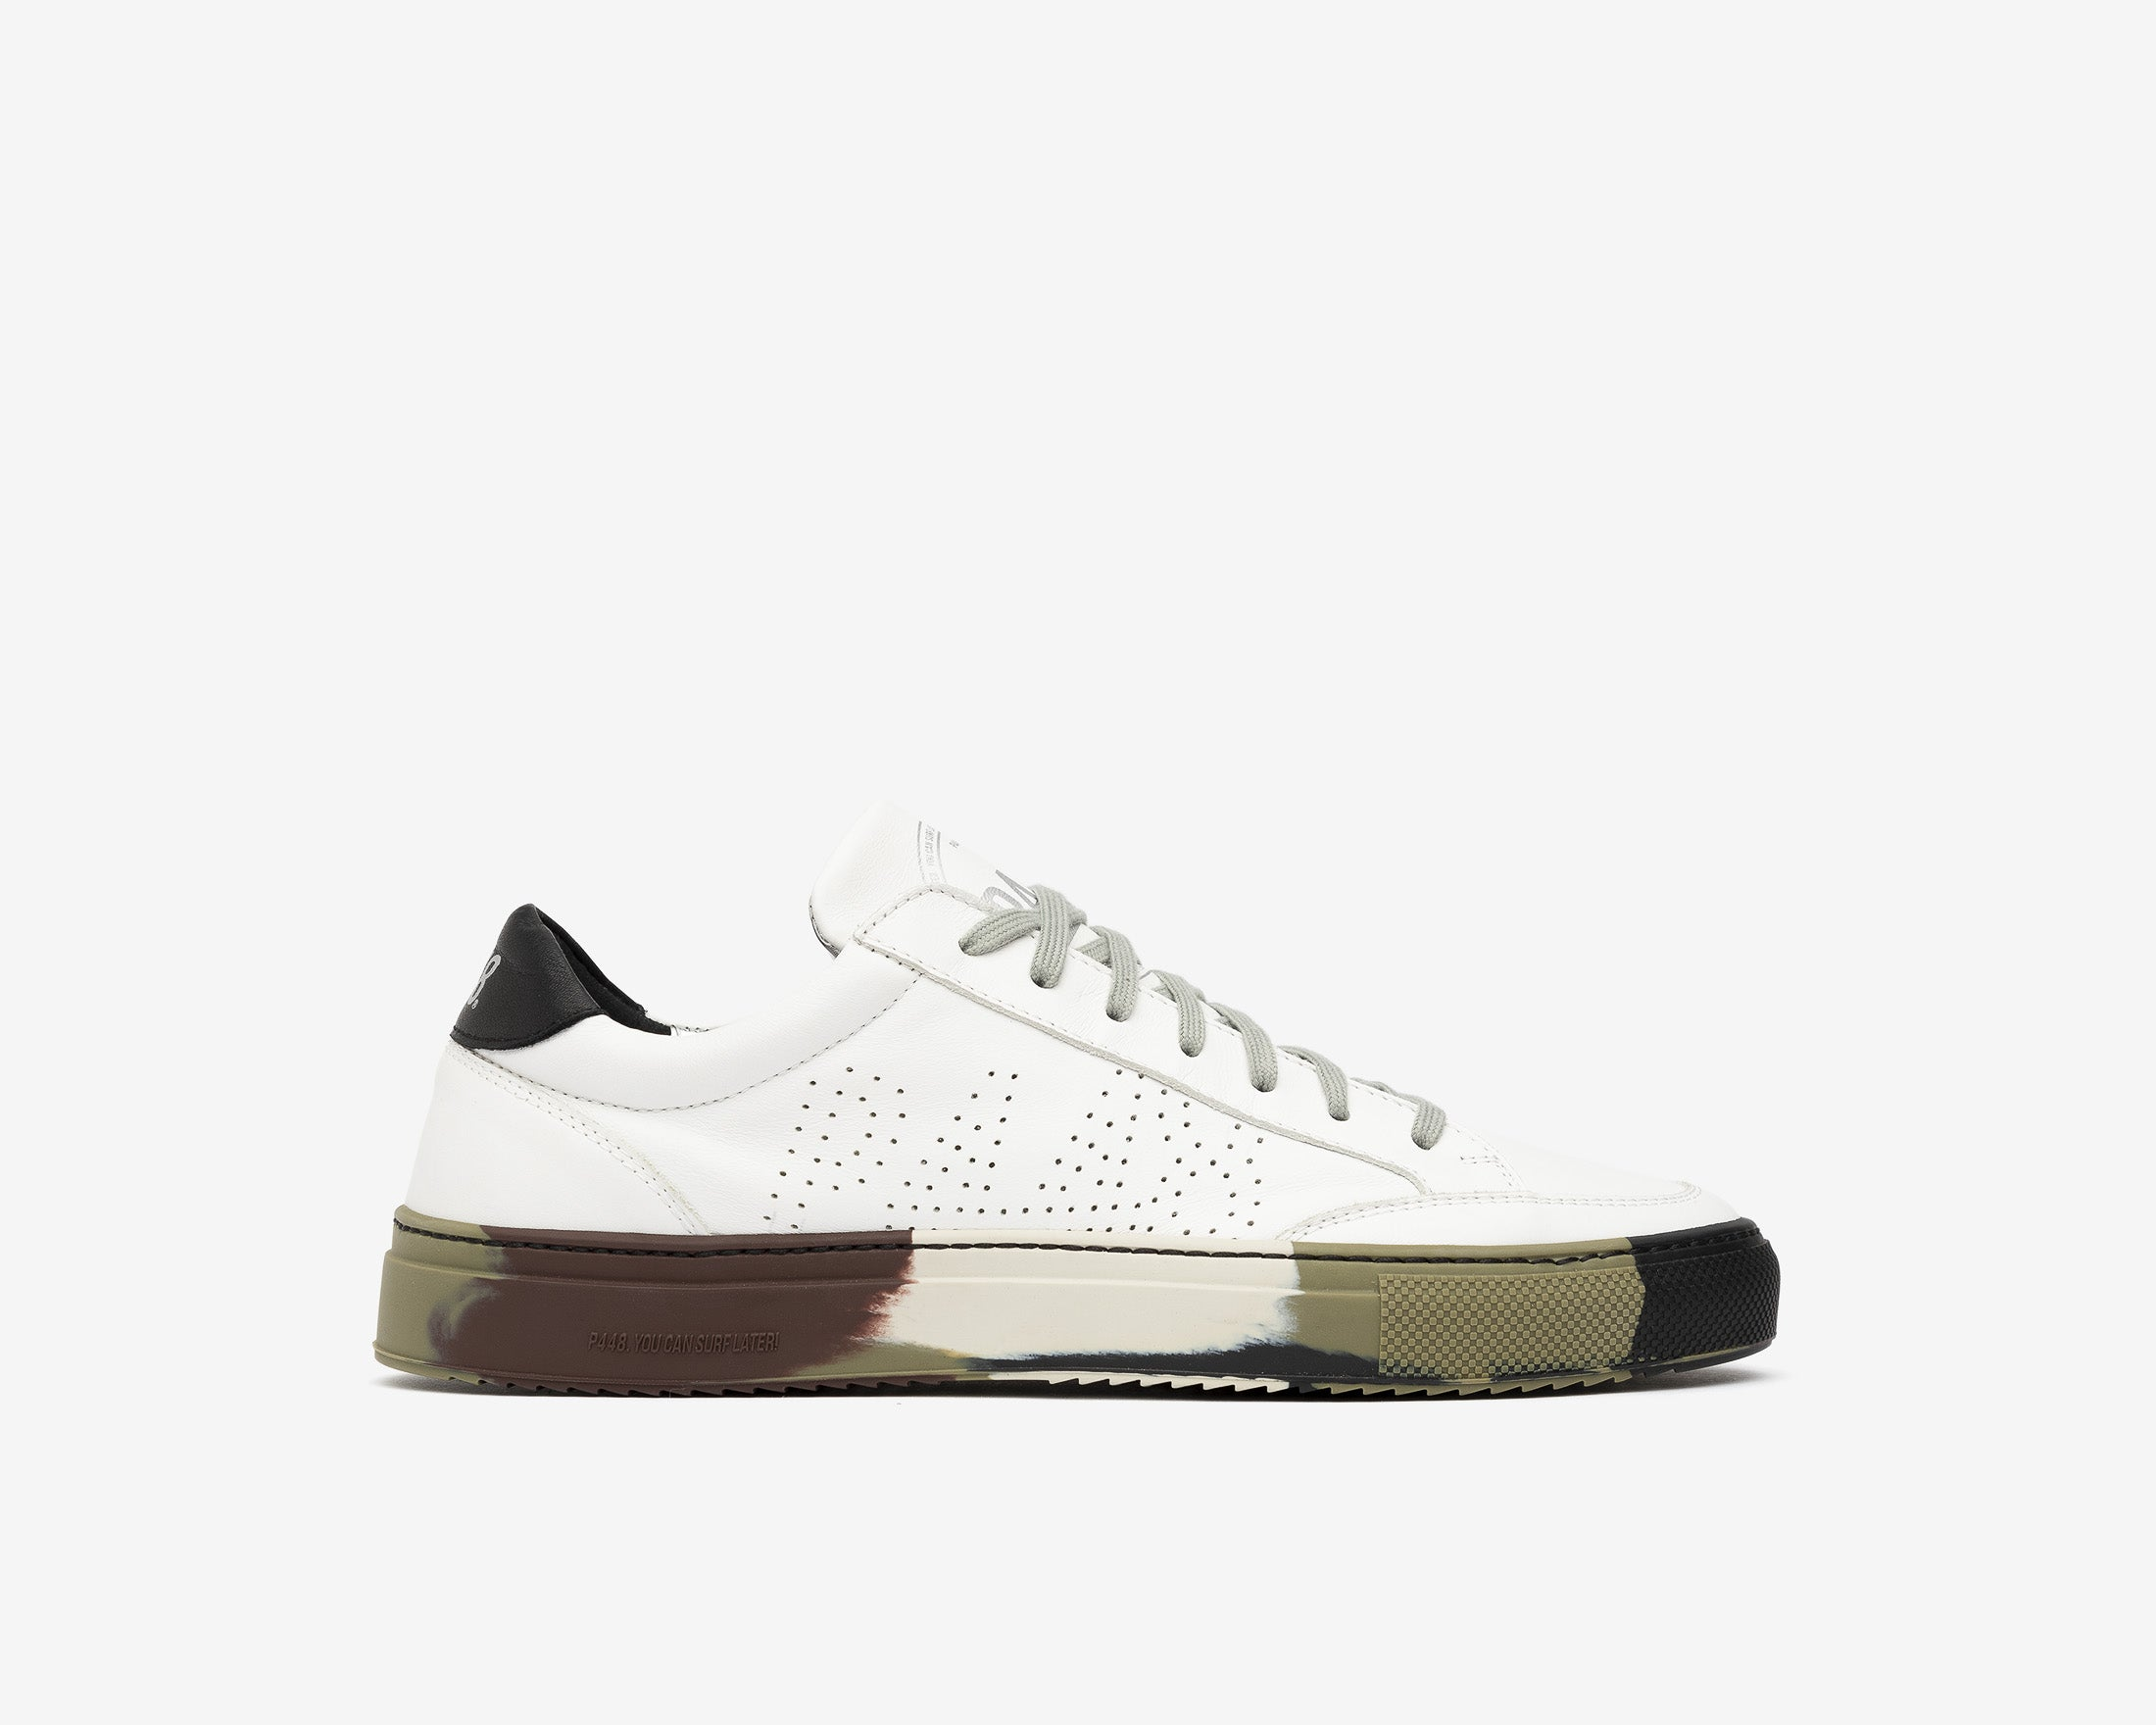 SohoP Low-Top Sneaker in White/Camo - Profile